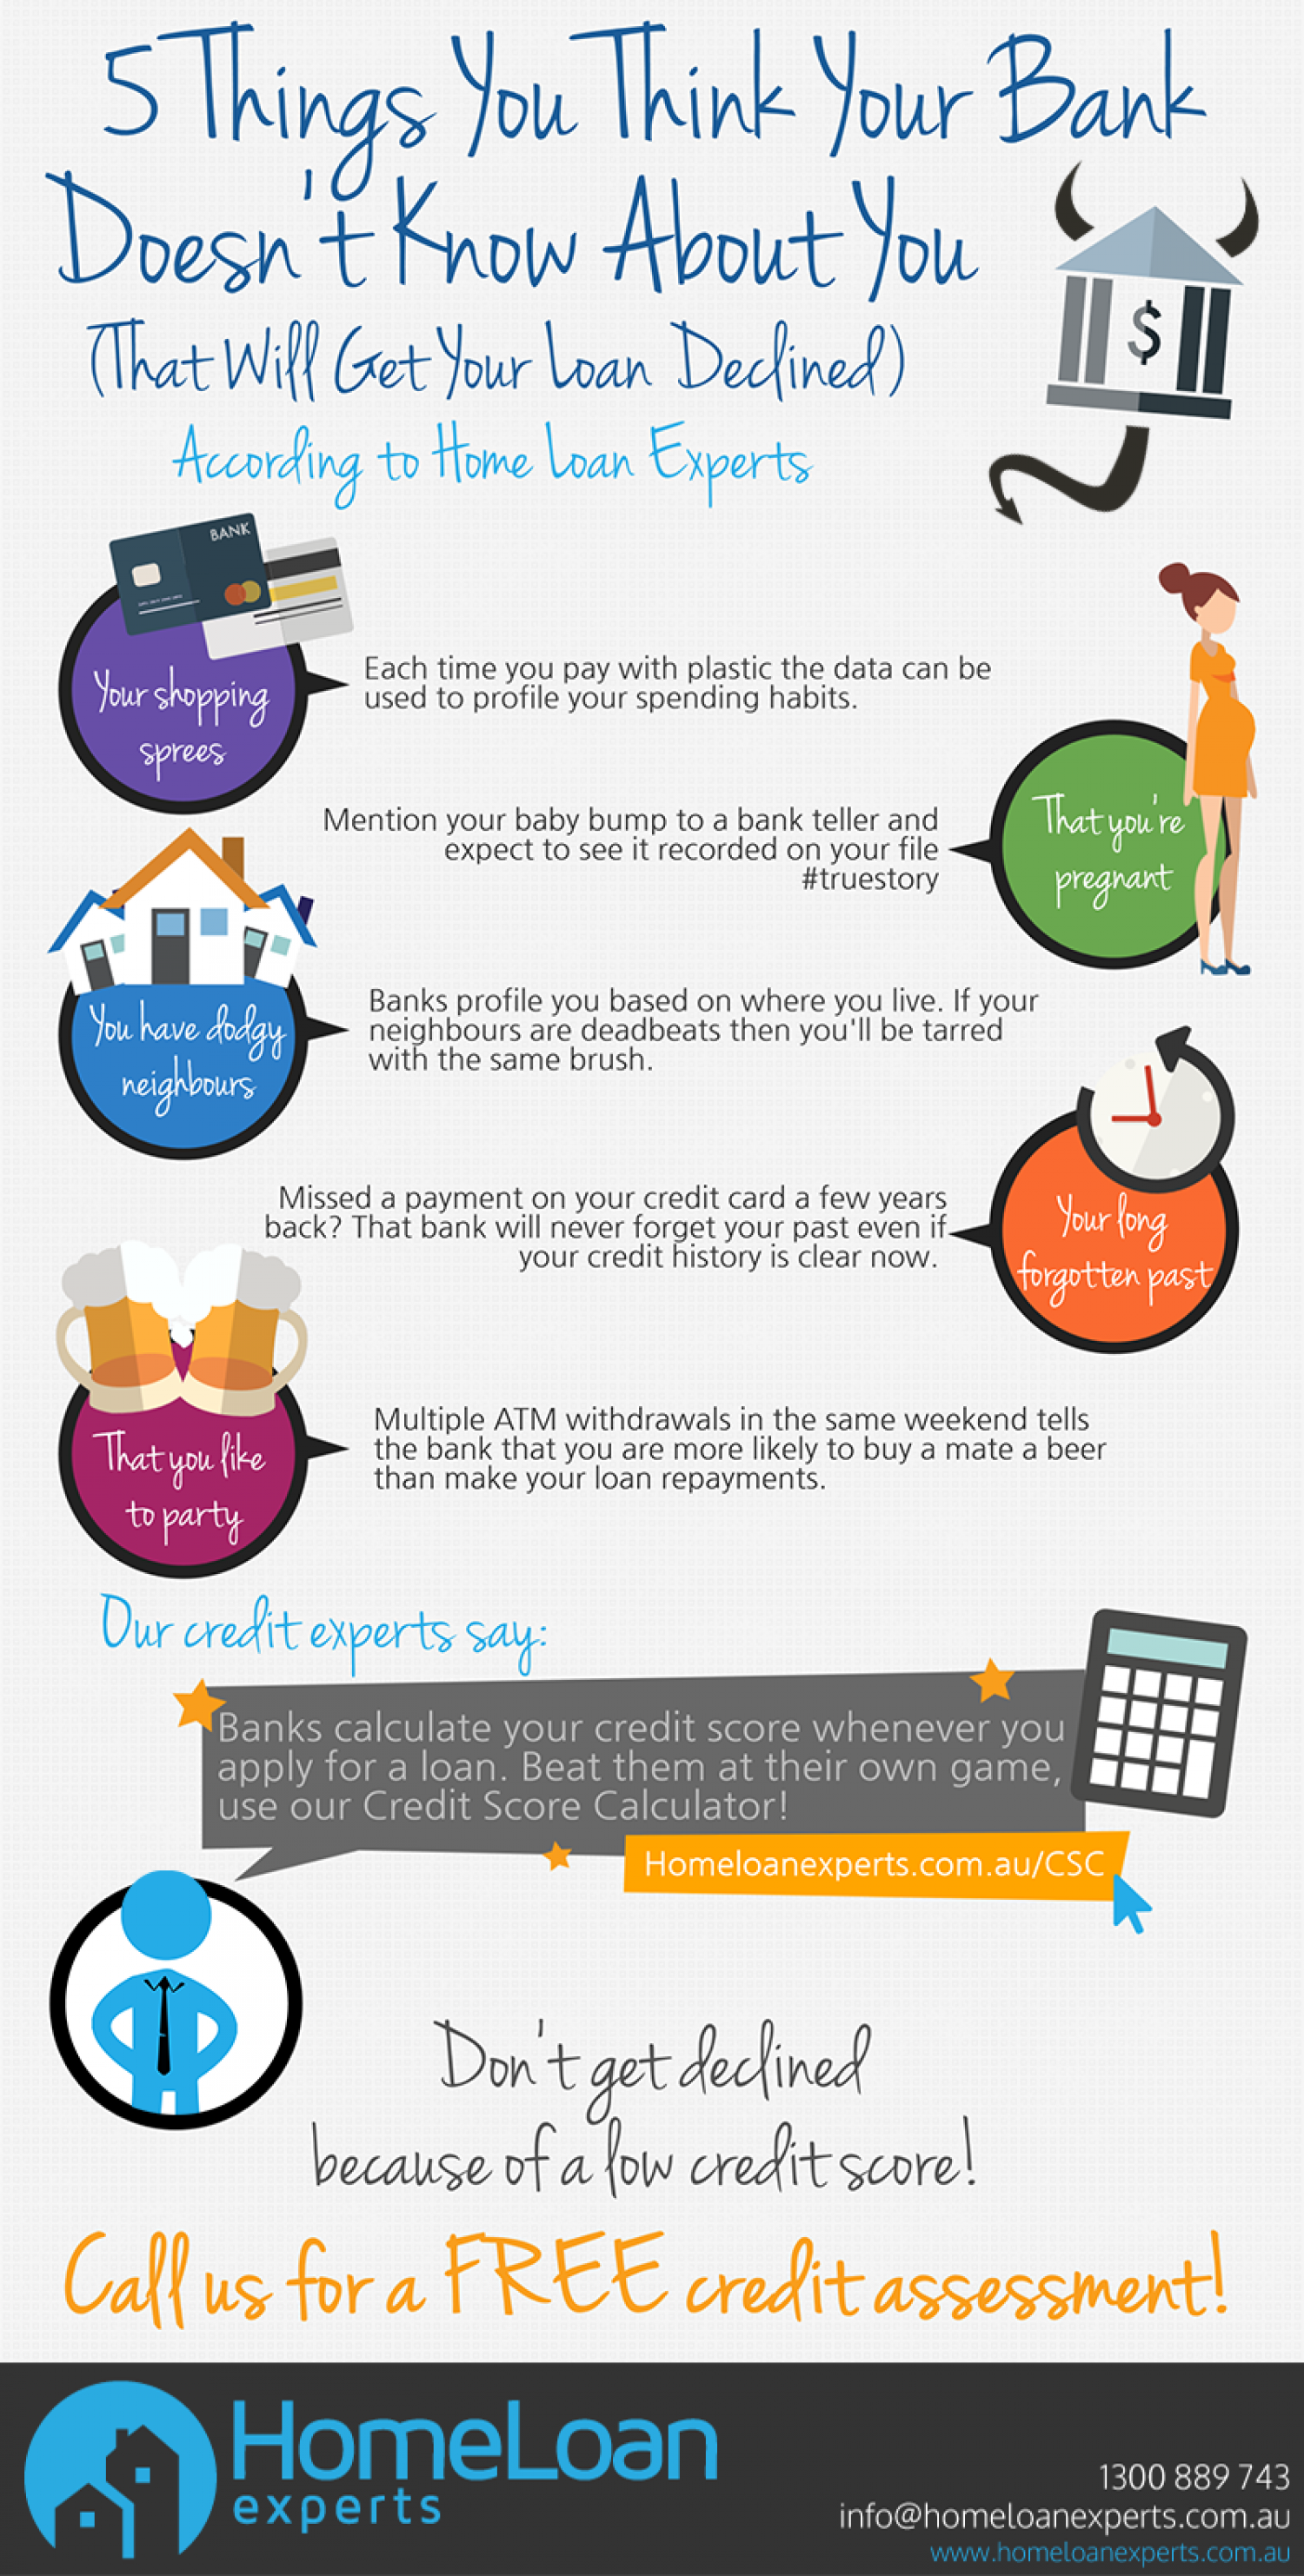 5 Things You Think Your Bank Doesn't Know About You Infographic